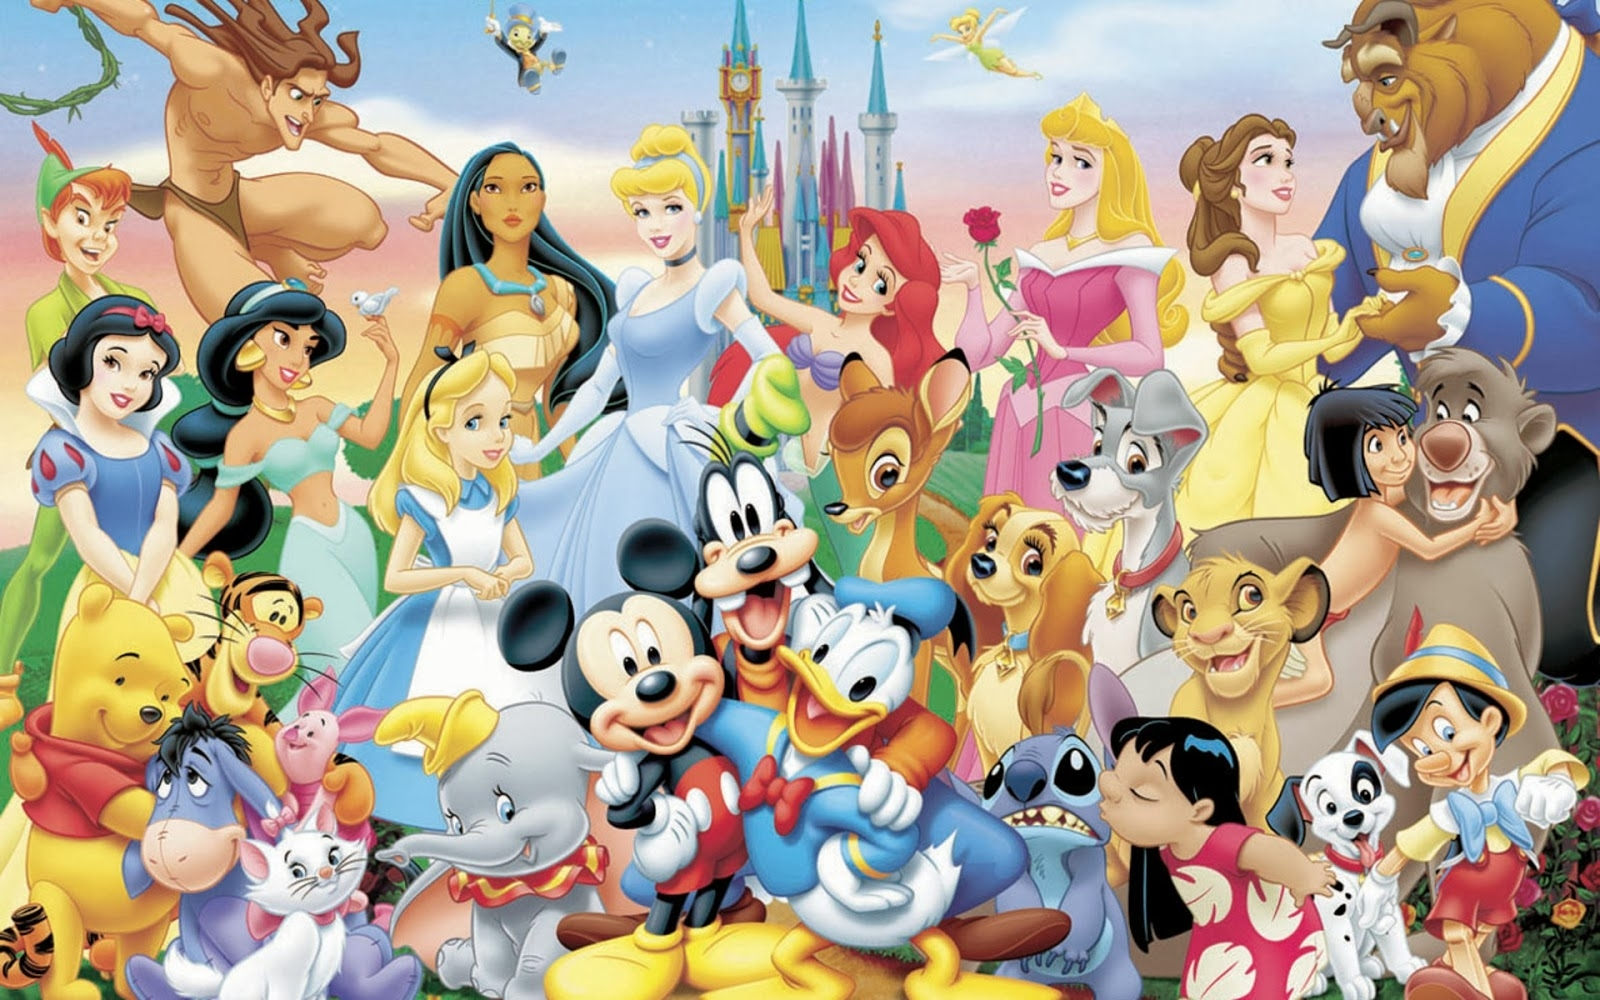 disney characters wallpaper hd 21649 - baltana